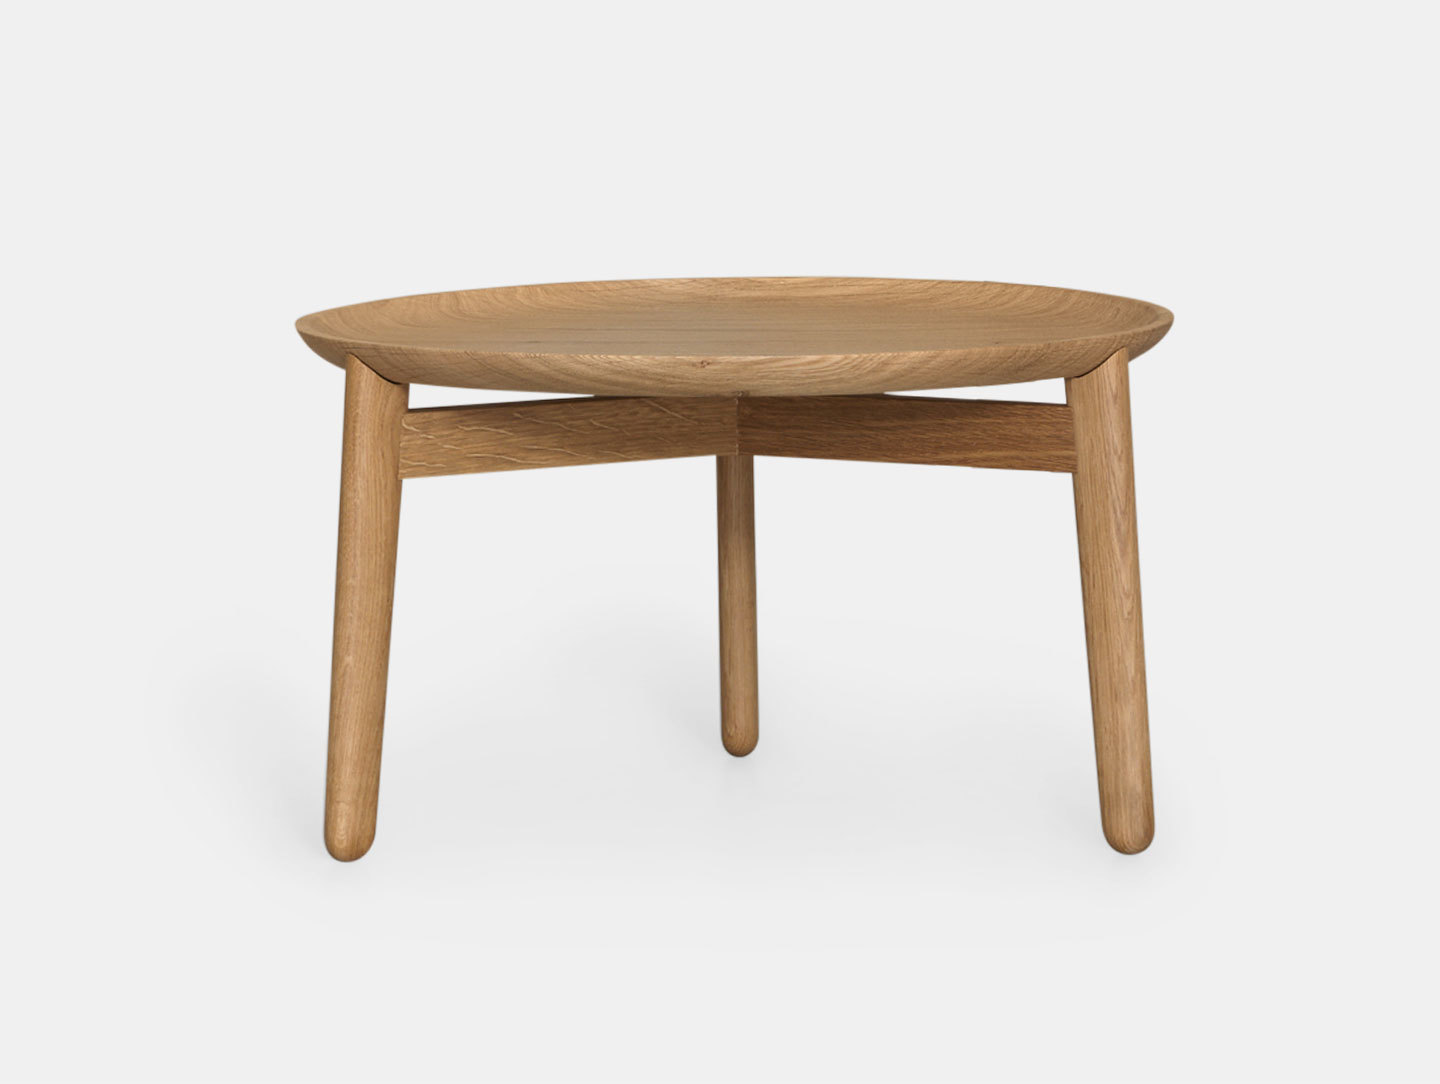 Zeitraum Plaisir Table Oak Dia54 H32 Formstelle